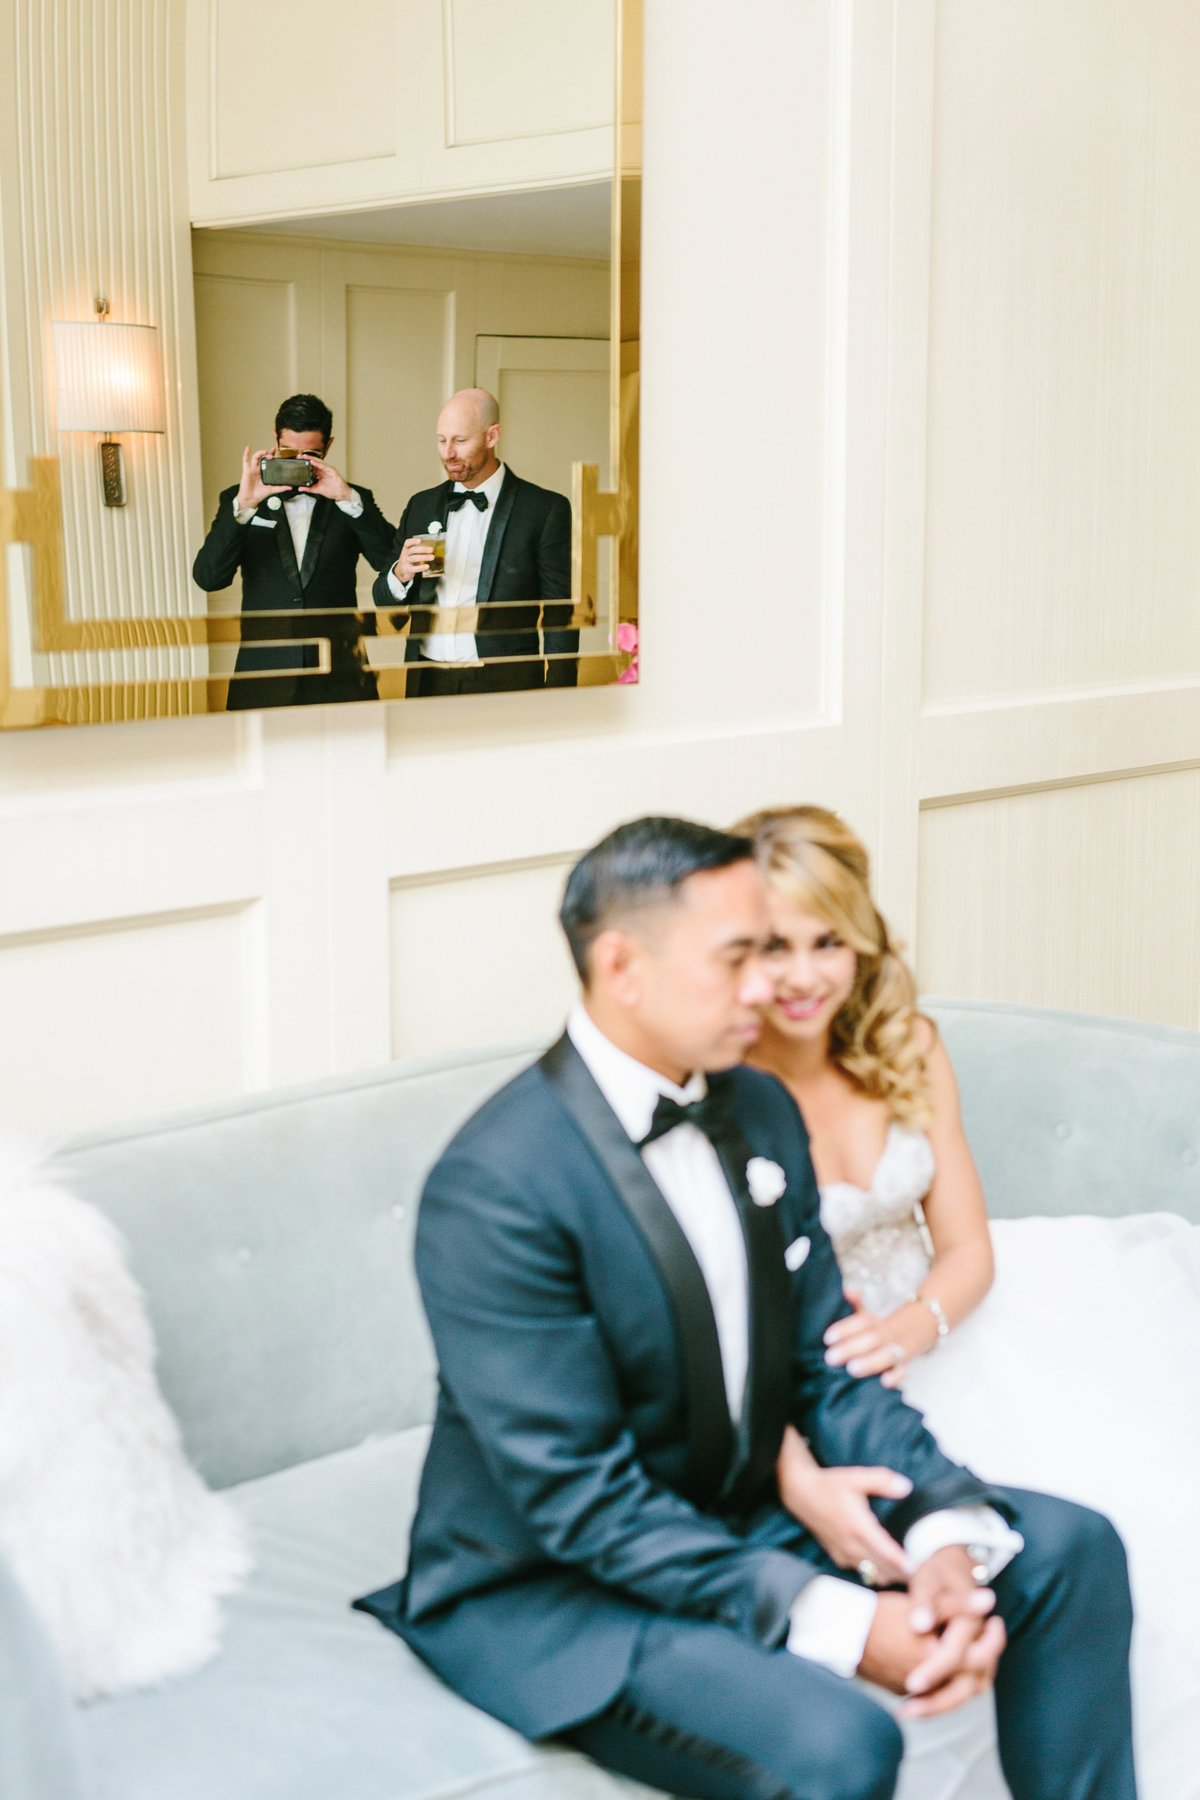 Best California Wedding Photographer-Jodee Debes Photography-237